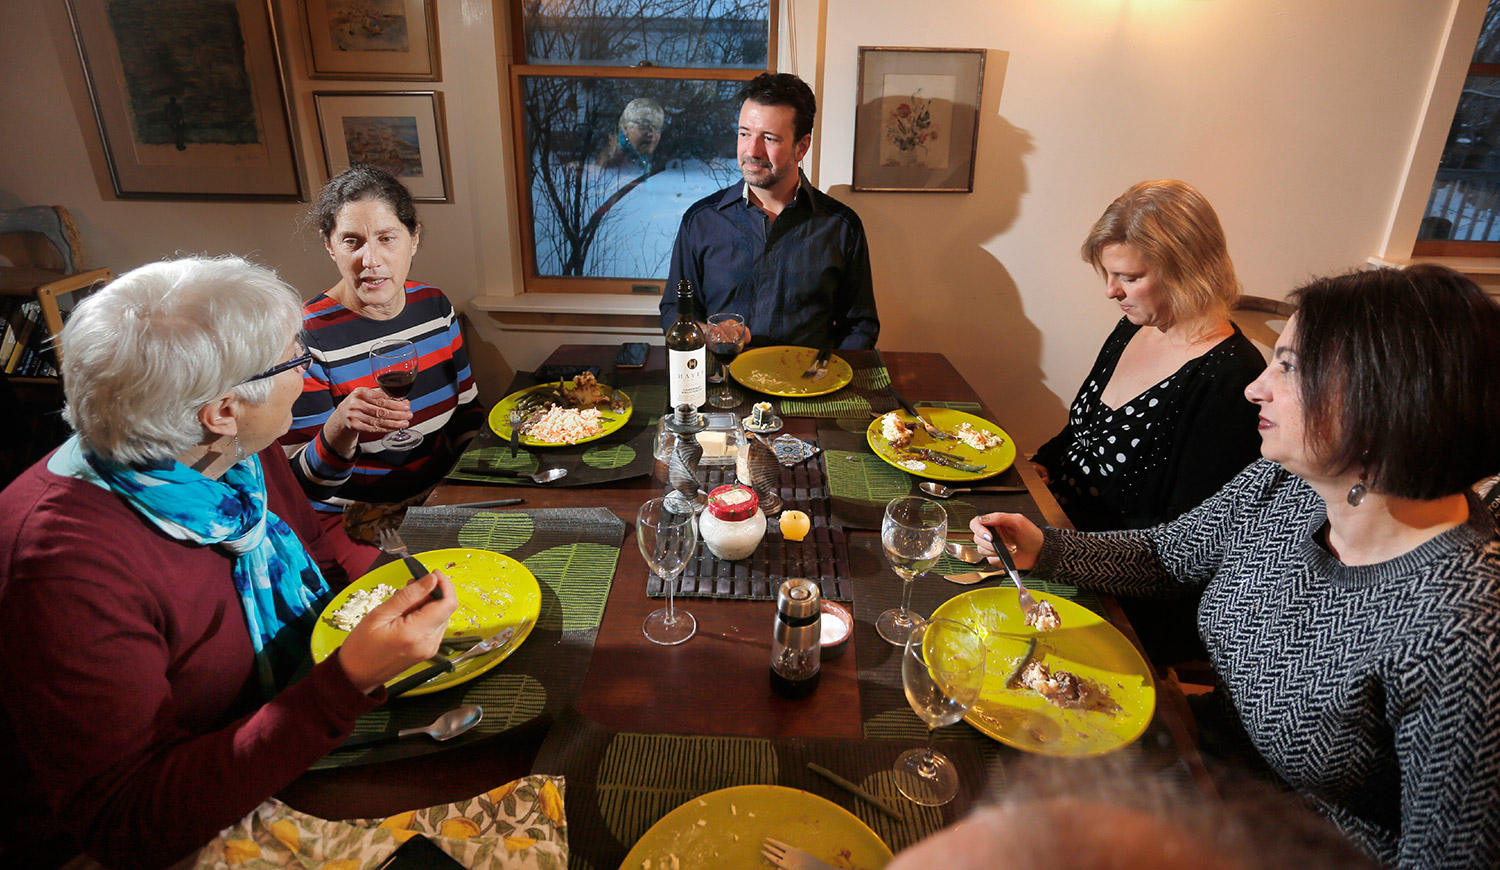 From left, Press Herald copy editor Charmaine Daniels, Food and Source Editor Peggy Grodinsky, Dave Rowe, Stacey Guth and Gillian Britt gathered to try Denny Breau's pot roast.